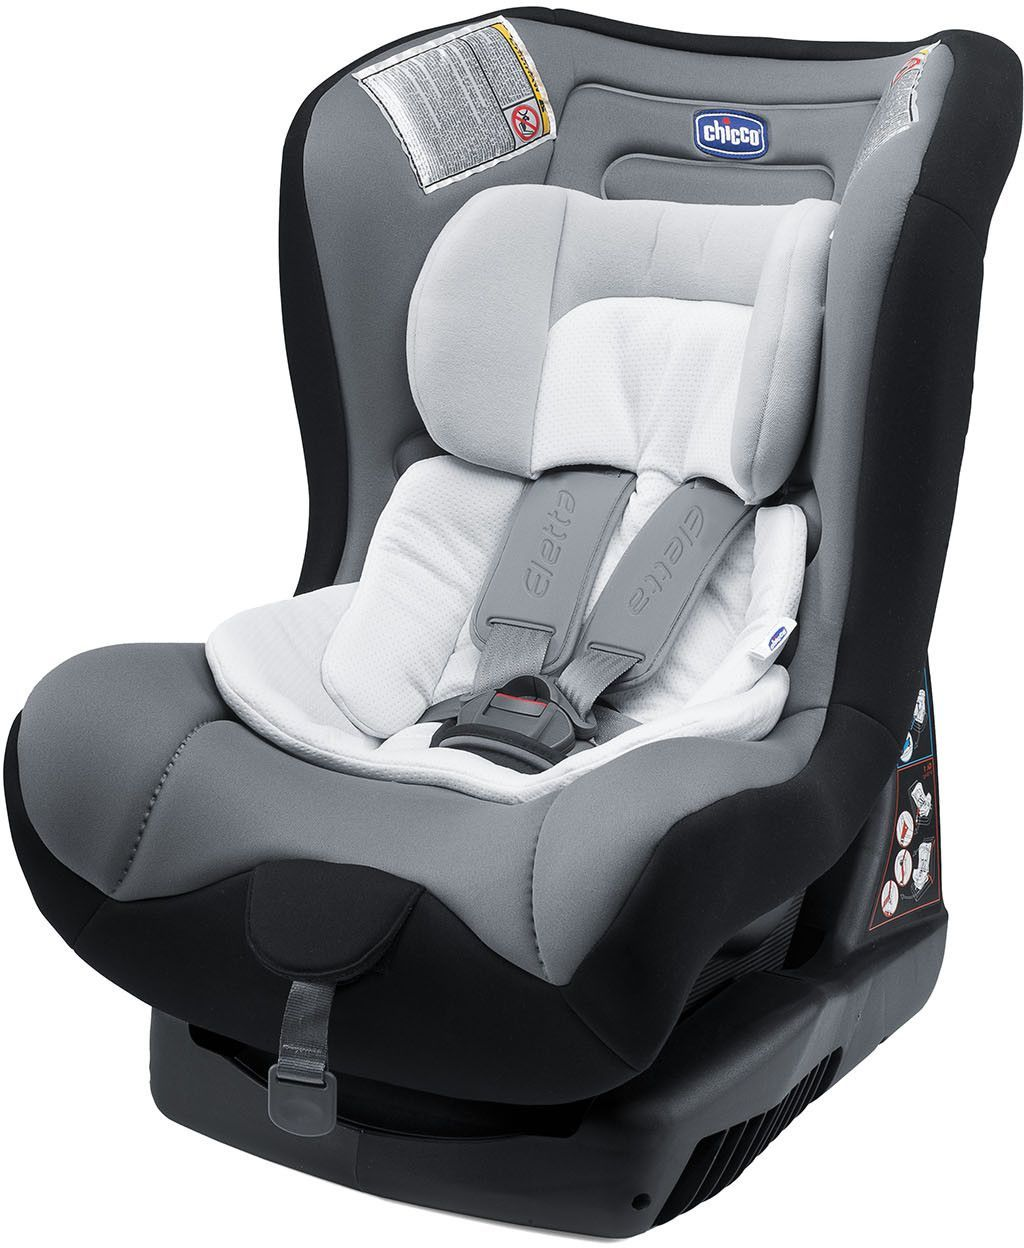 Silla Auto Chicco Chicco Car Seat Rental